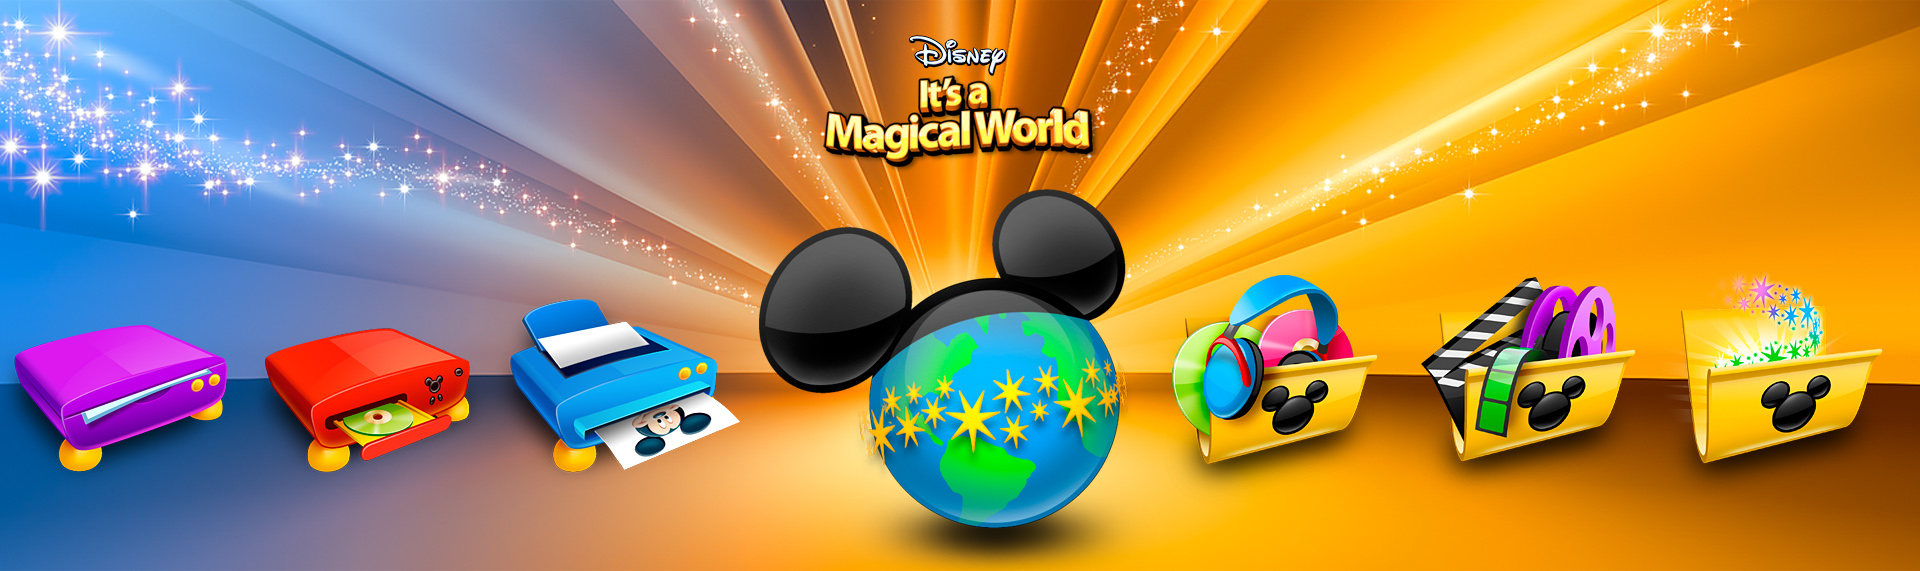 Disney's It's a Magical World Windows Desktop Icon Set  Client: The Walt Disney Company  Initially contracted by The Walt Disney Company and then under license, the Official Disney Desktop theme for Windows 7, Vista & XP, features 5 color themes, an assortment of magical desktop icons, custom wallpapers, a fun Mickey Mouse iTunes audio remote and a Windows Media Player skin. The theme was powered by The Skins Factory's advanced Windows desktop theming solution Hyperdesk, Unfortunately, this magical theme is no longer available.